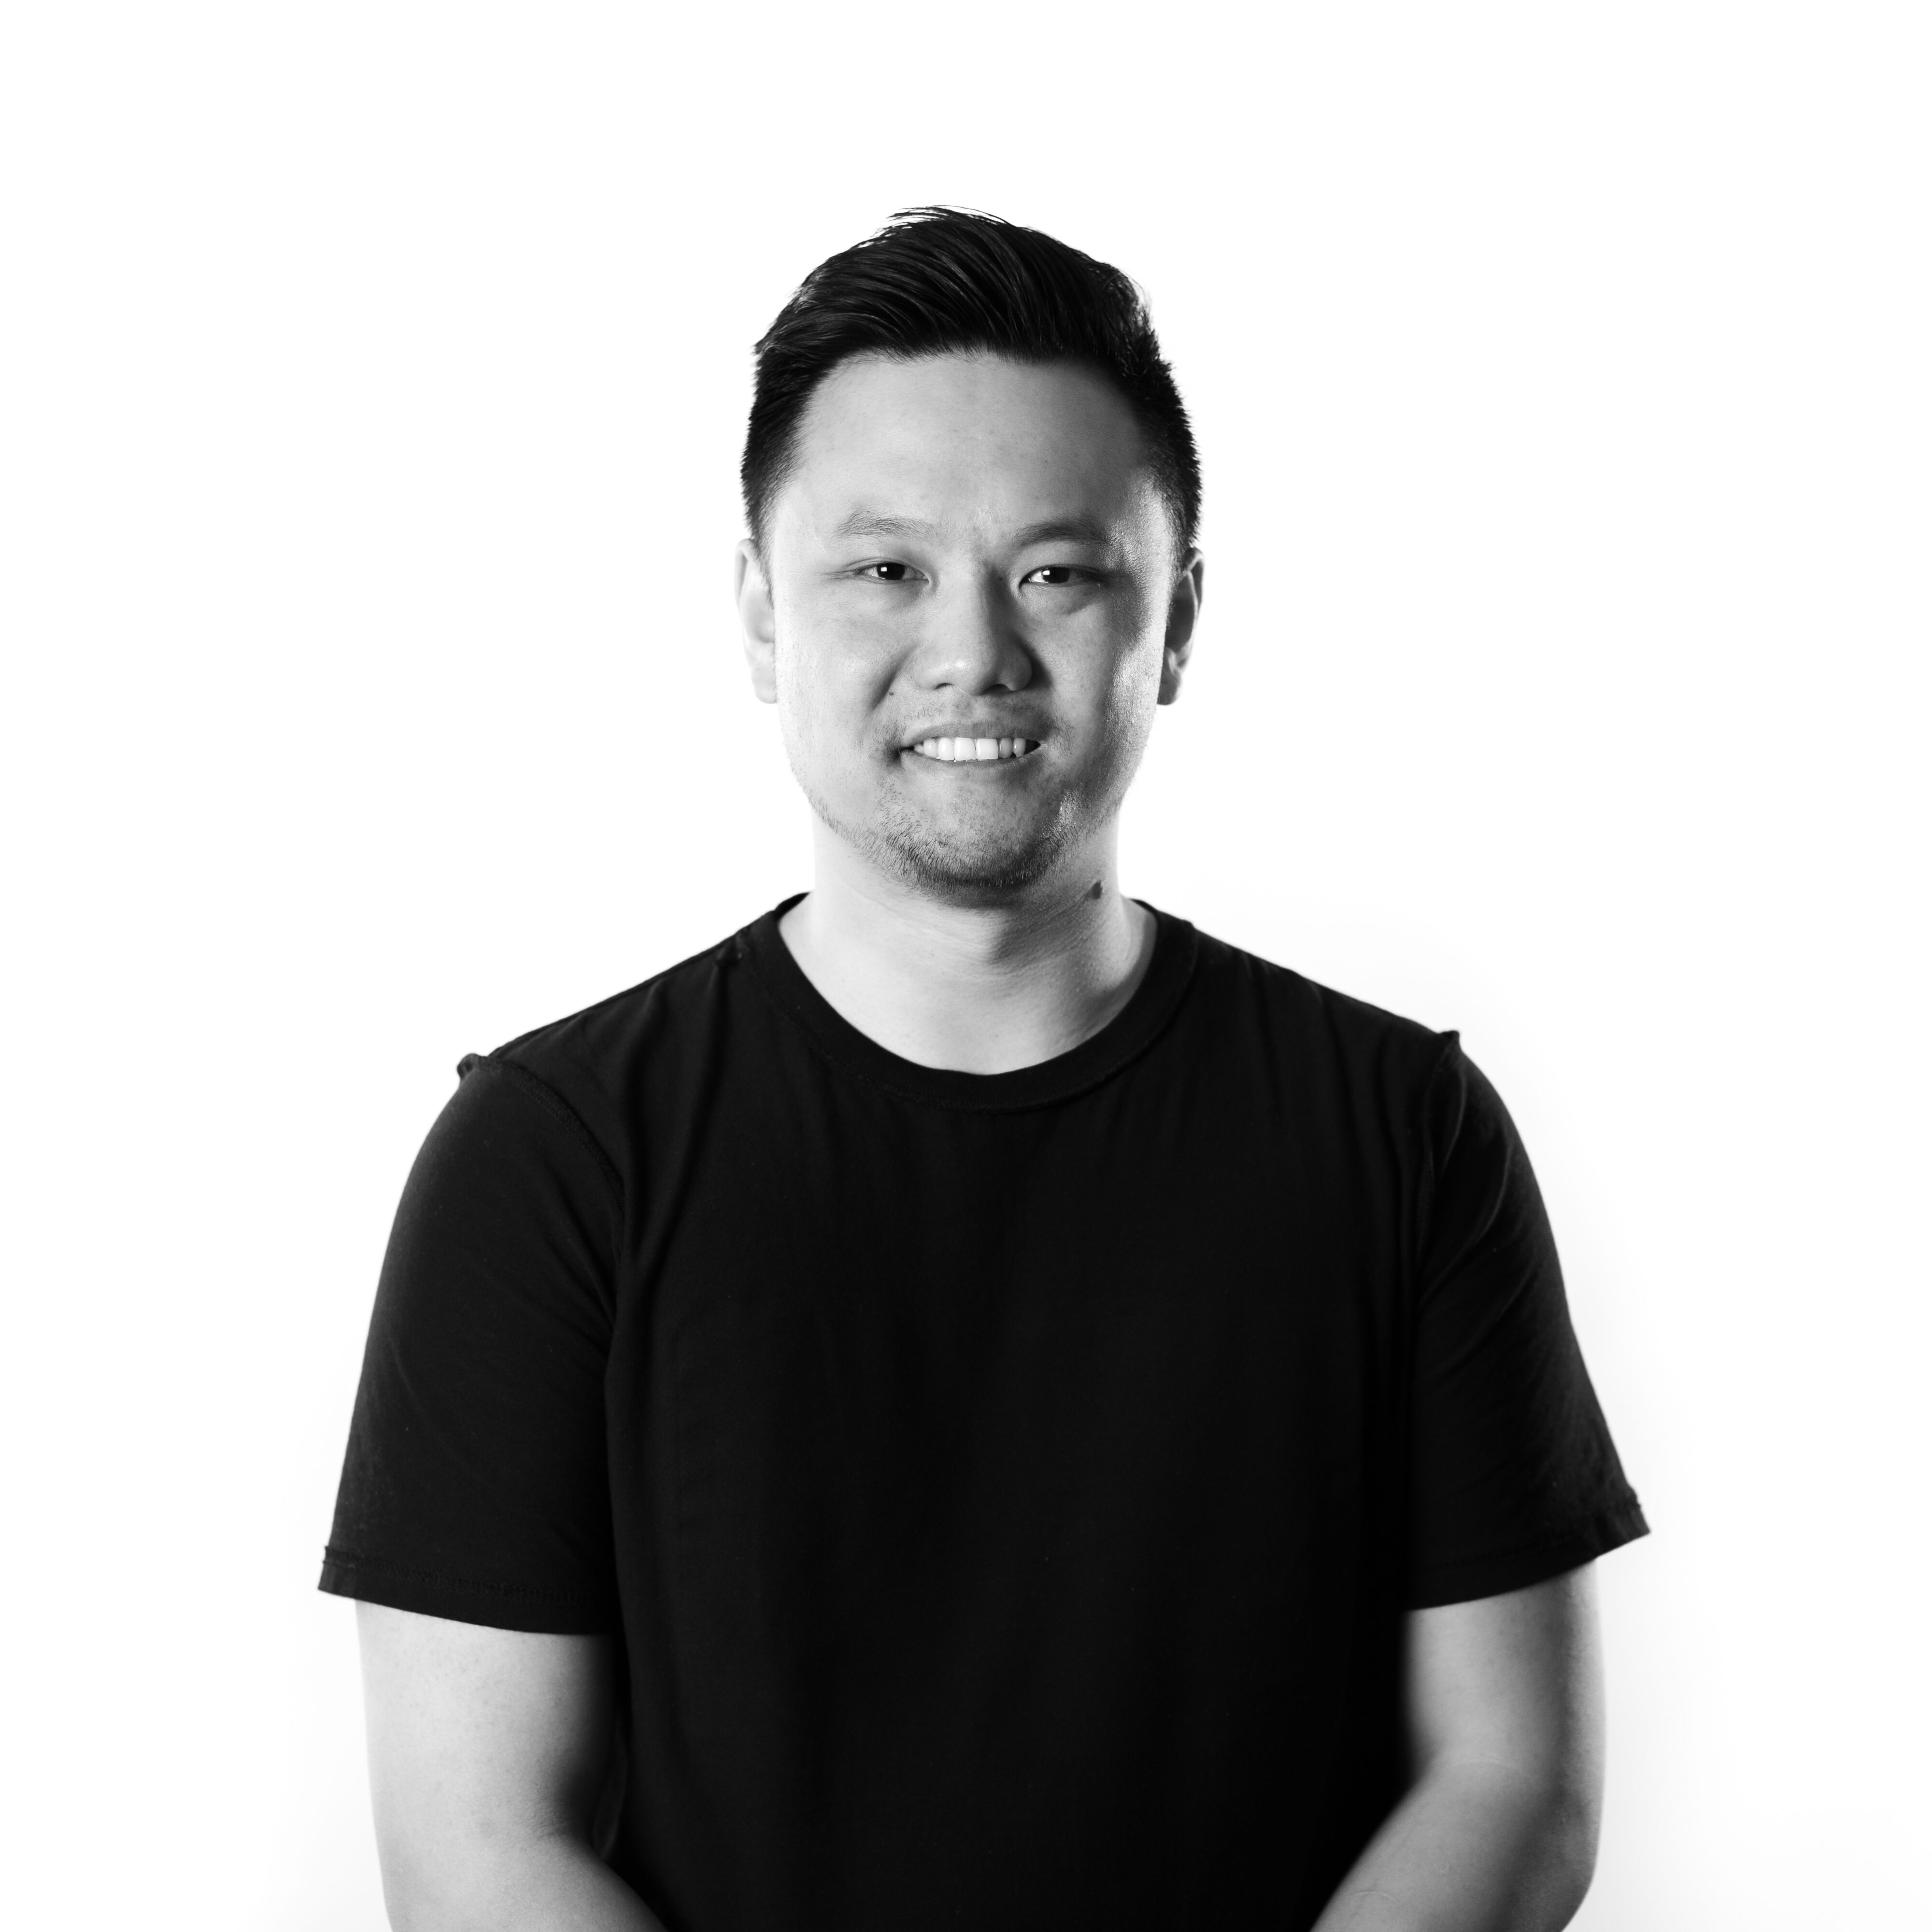 Born Bred Talent appoints TikToker Thomas Cheung as head of strategy; announces free TikTok Workshop series for marketers